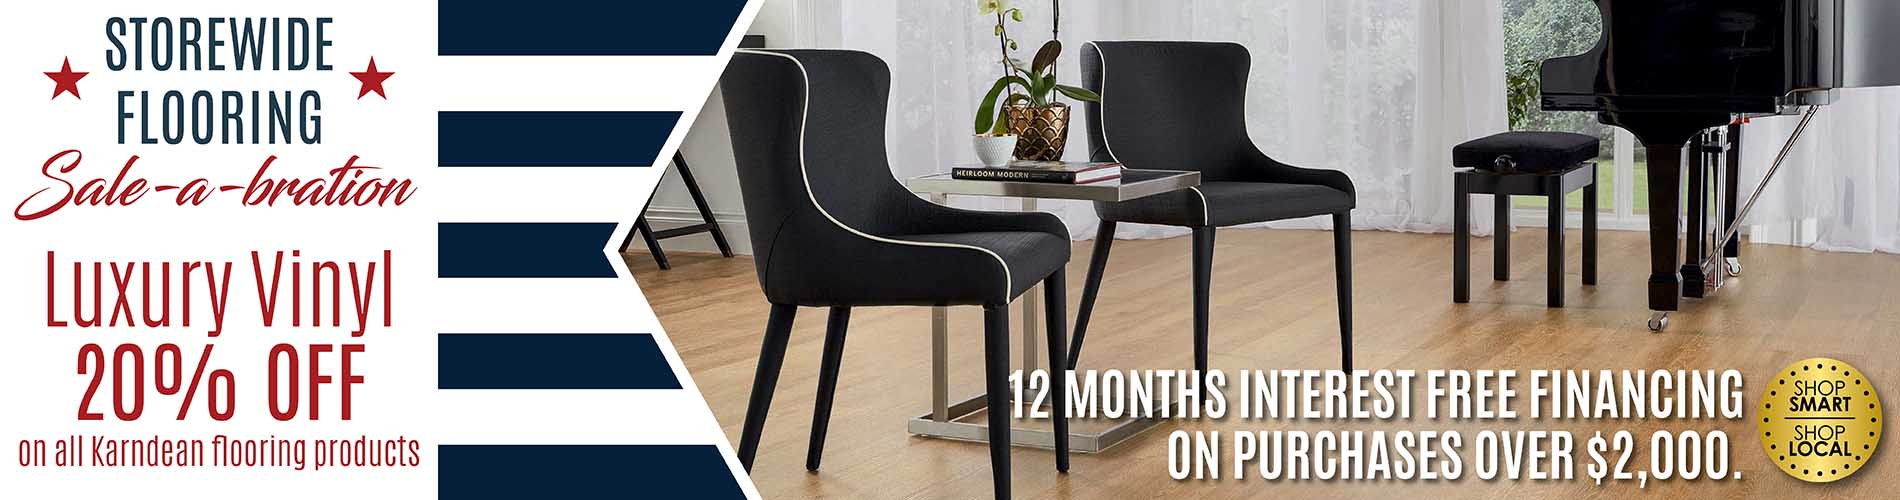 July Savings Event - 12 Months Interest Free Financing On Purchases Over $2,000. 20% off on all Karndean flooring products